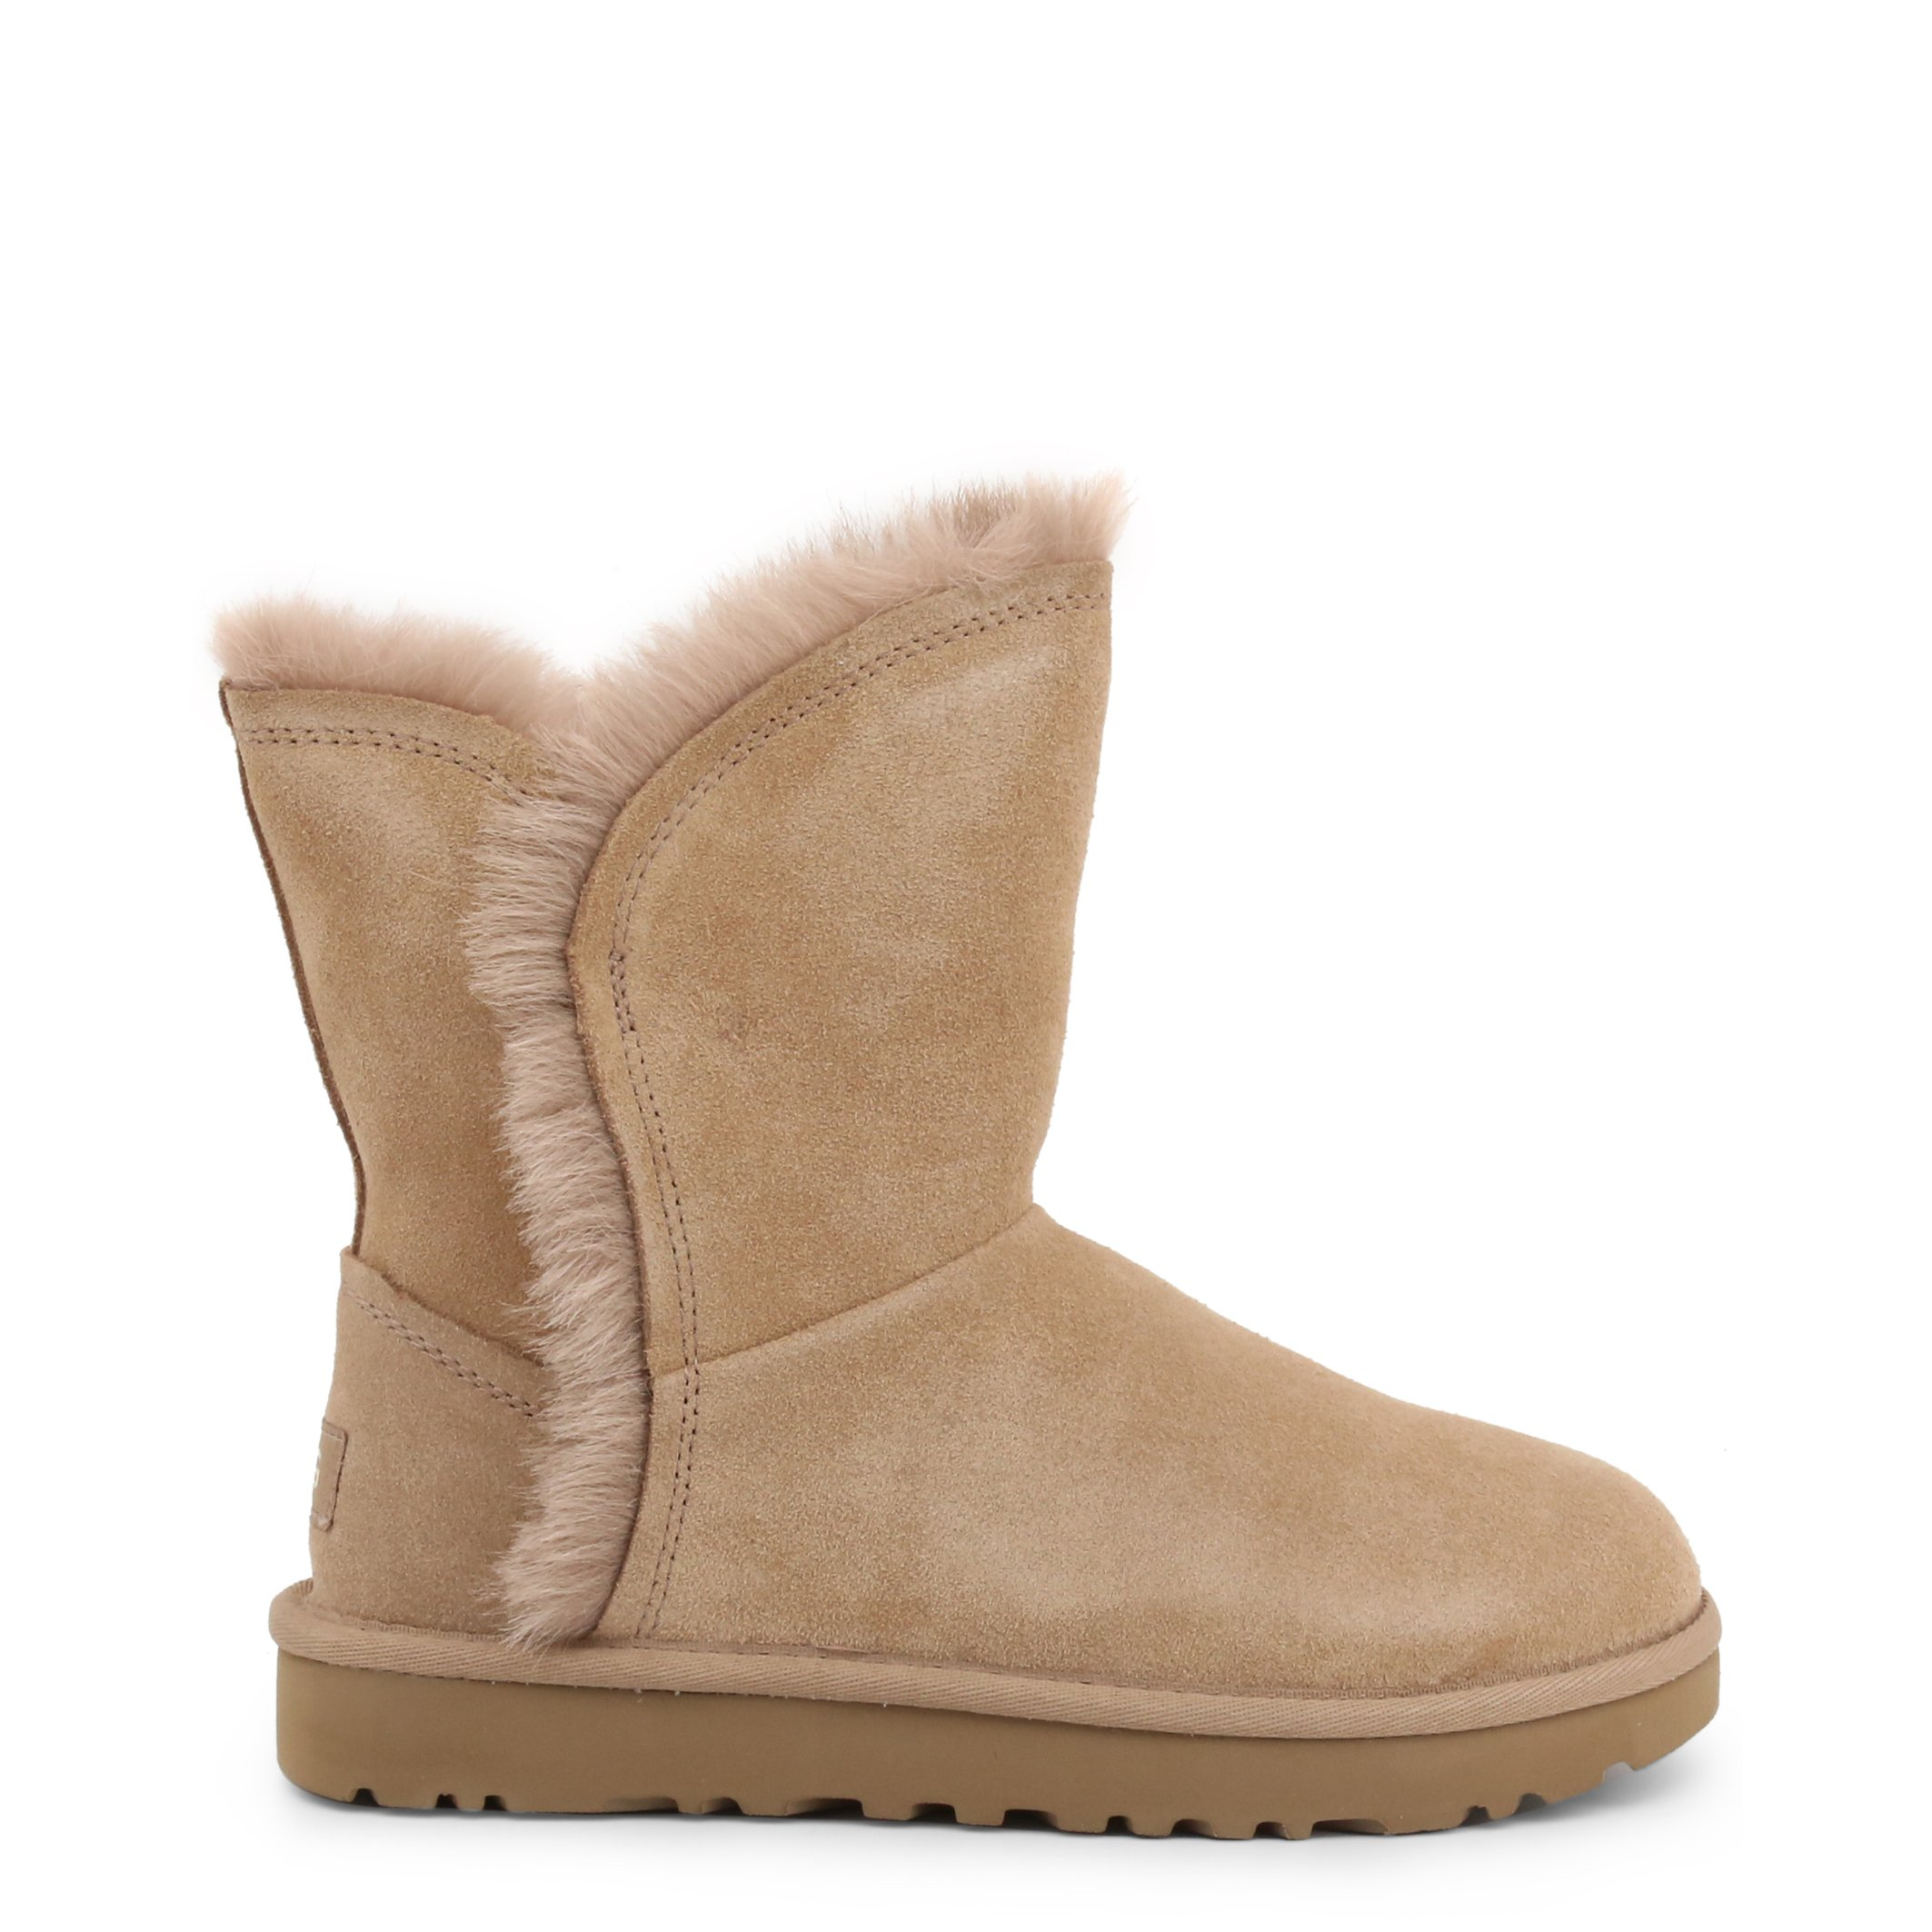 UGG Women's Ankle Boot Various Colours 1103746 - brown EU 41